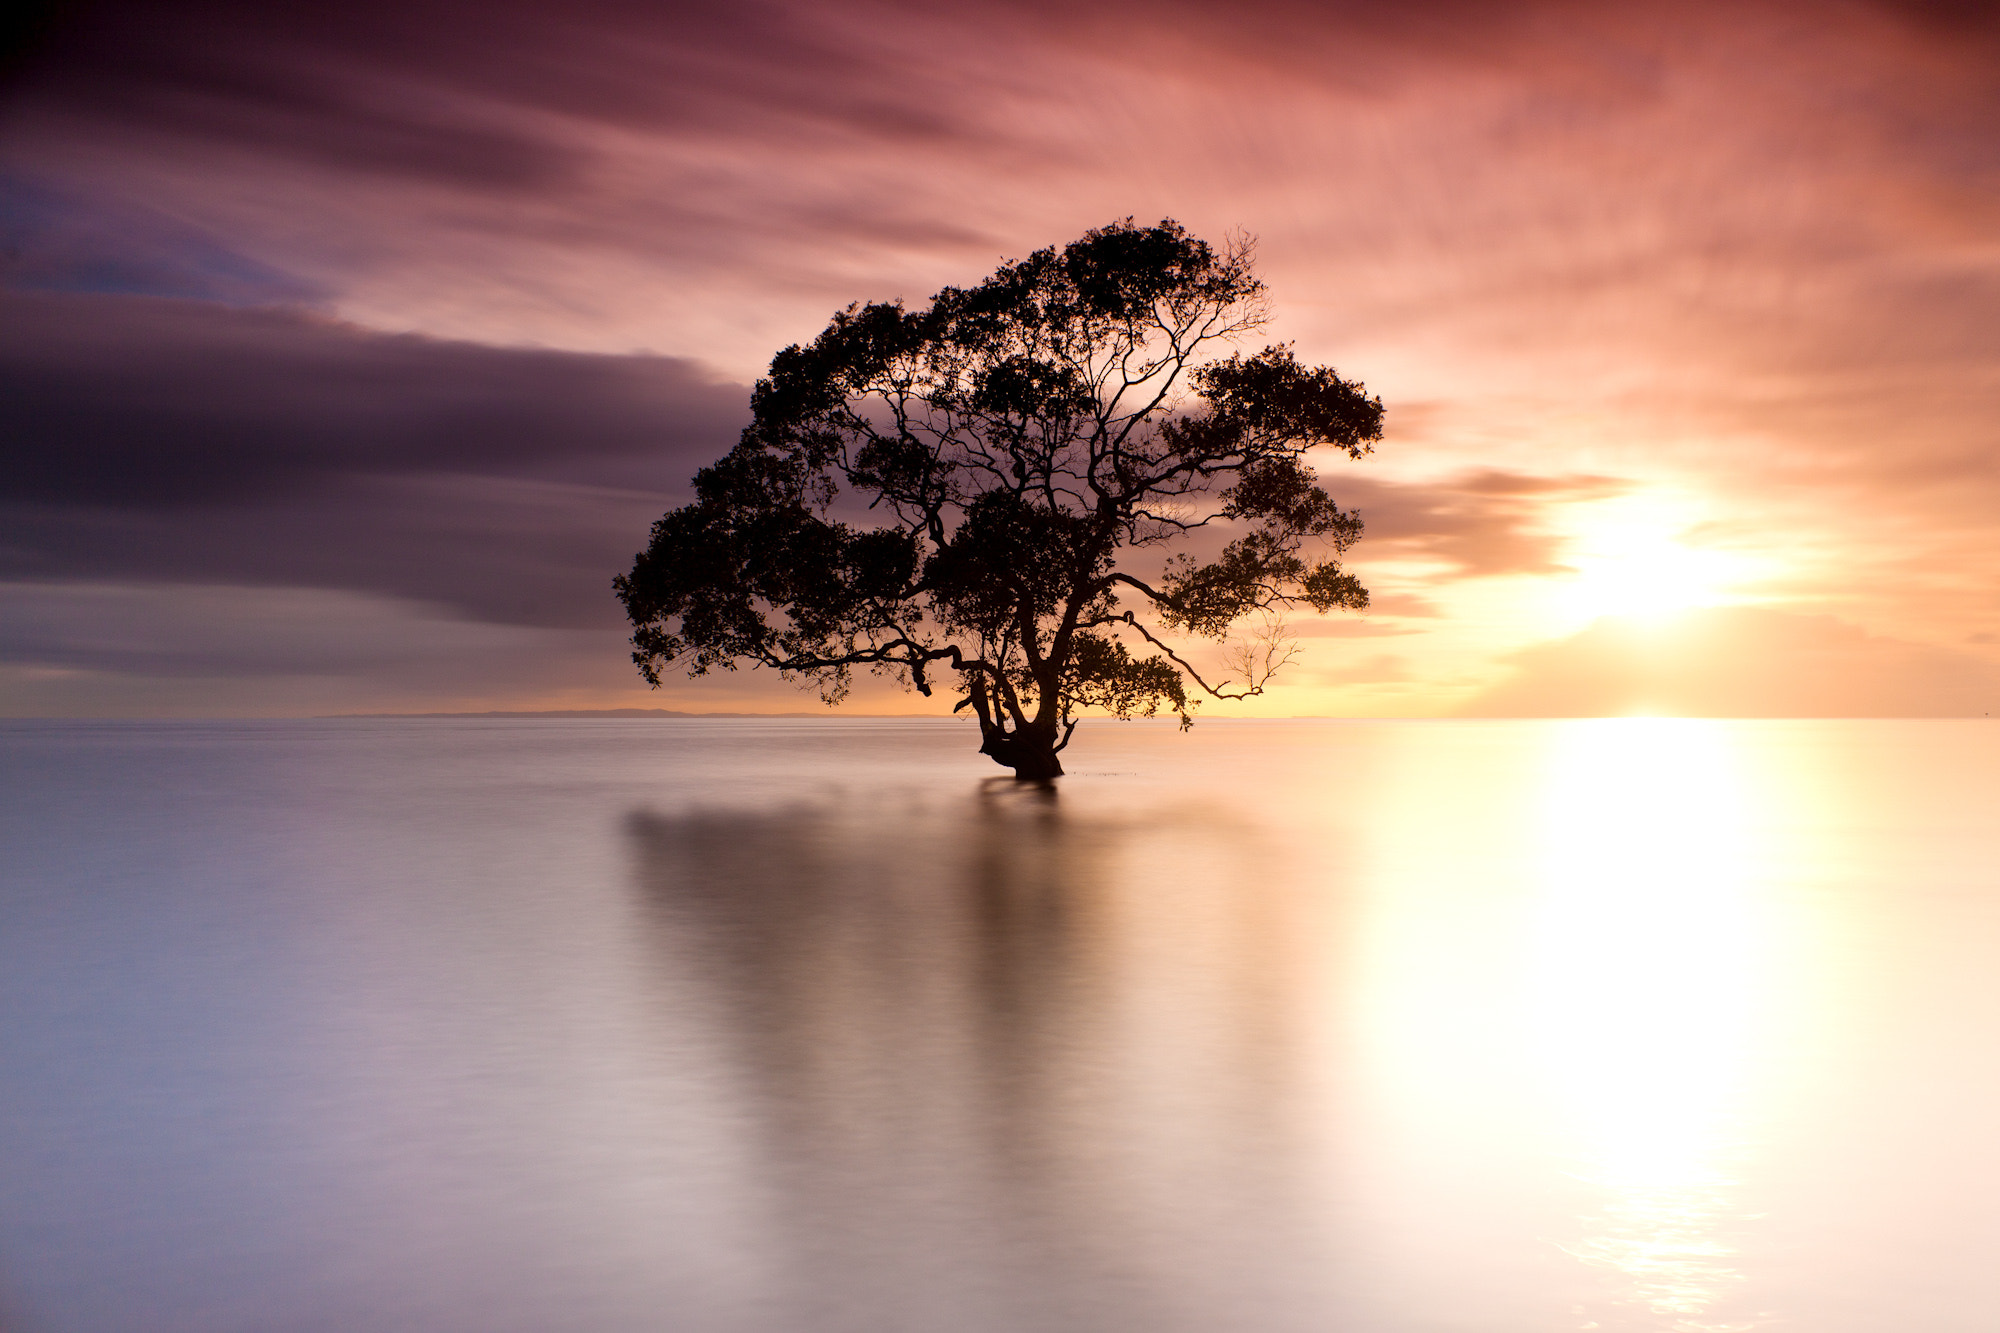 Photograph Isolation by Andrew Tallon on 500px